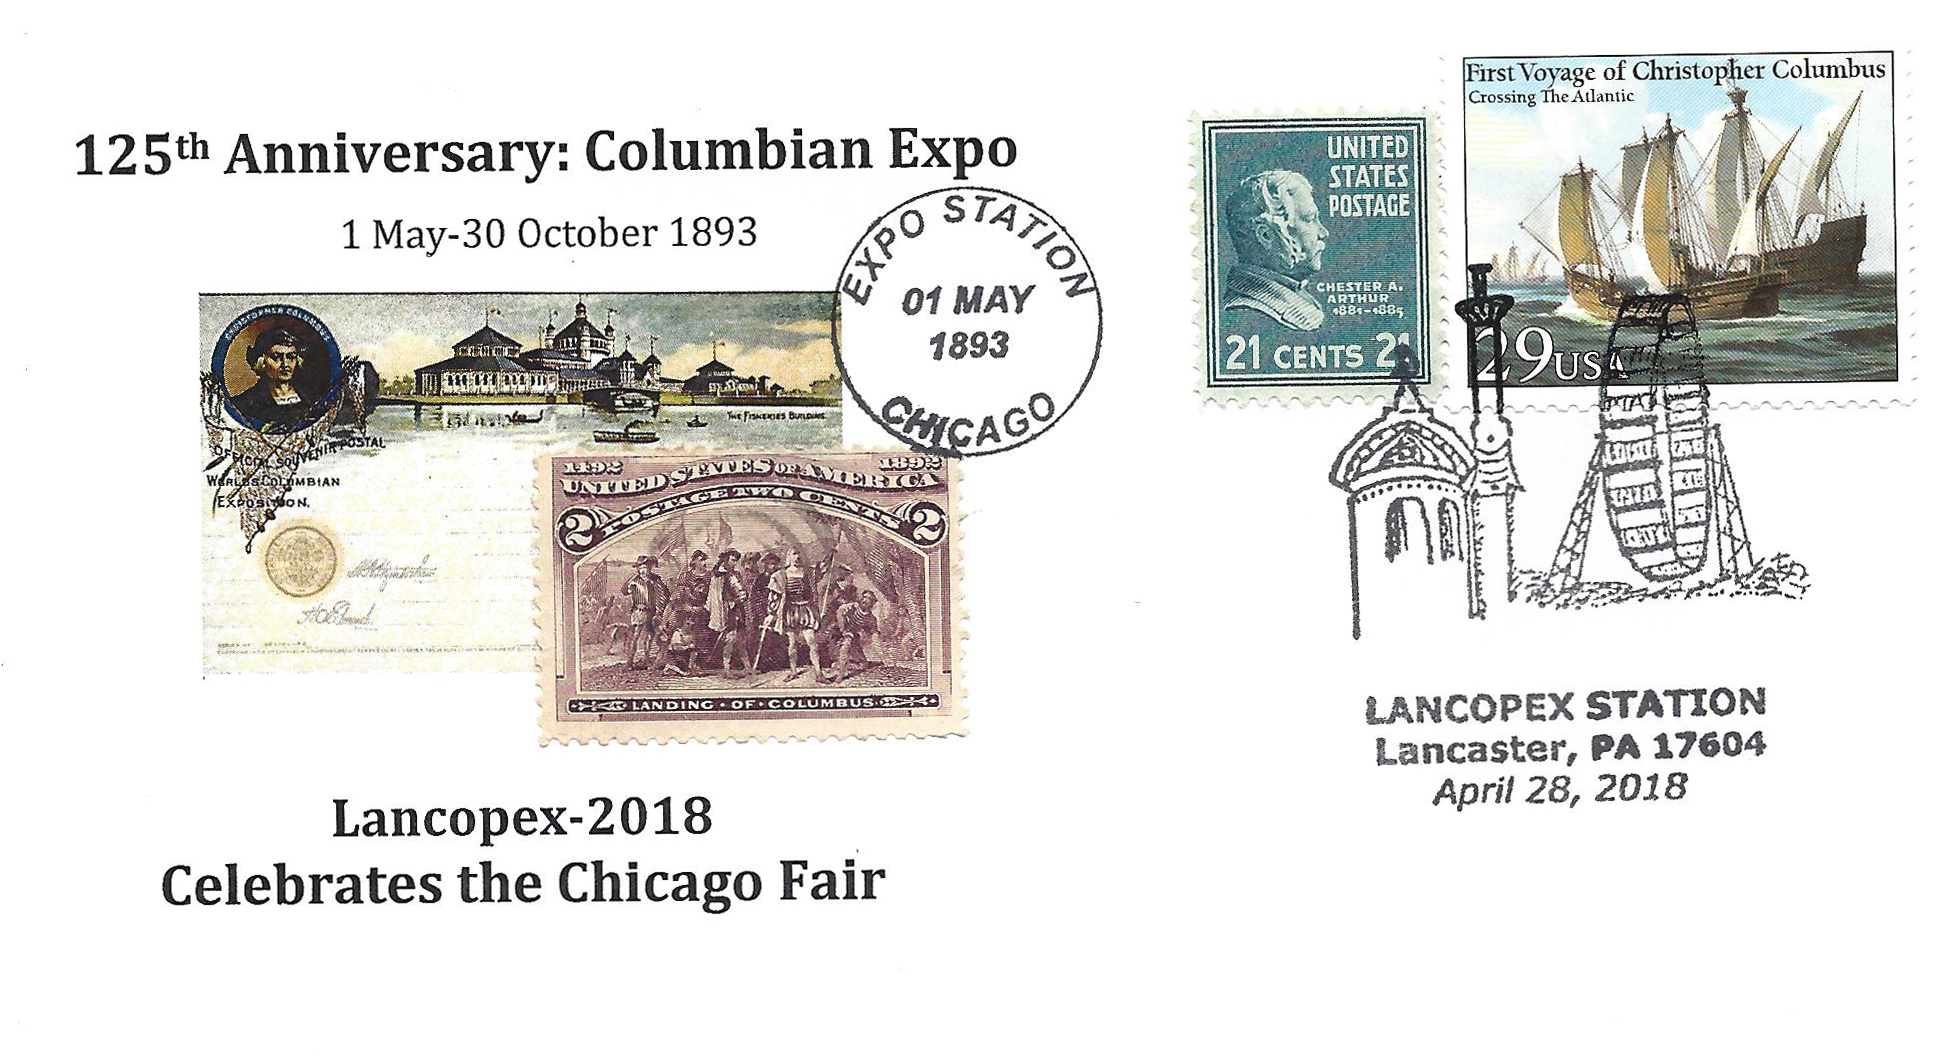 2018-04-28 Lancopex Cover Day 2